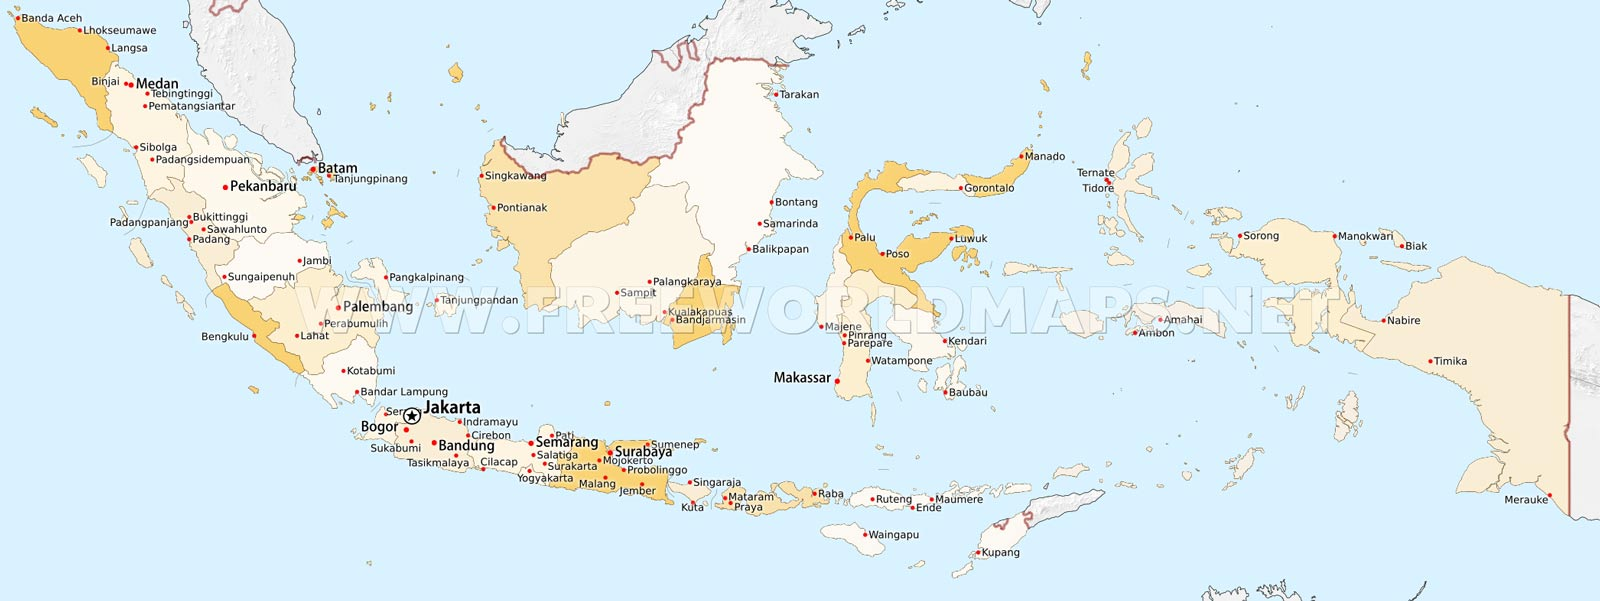 Indonesia maps indonesia physical map indonesia cities gumiabroncs Image collections